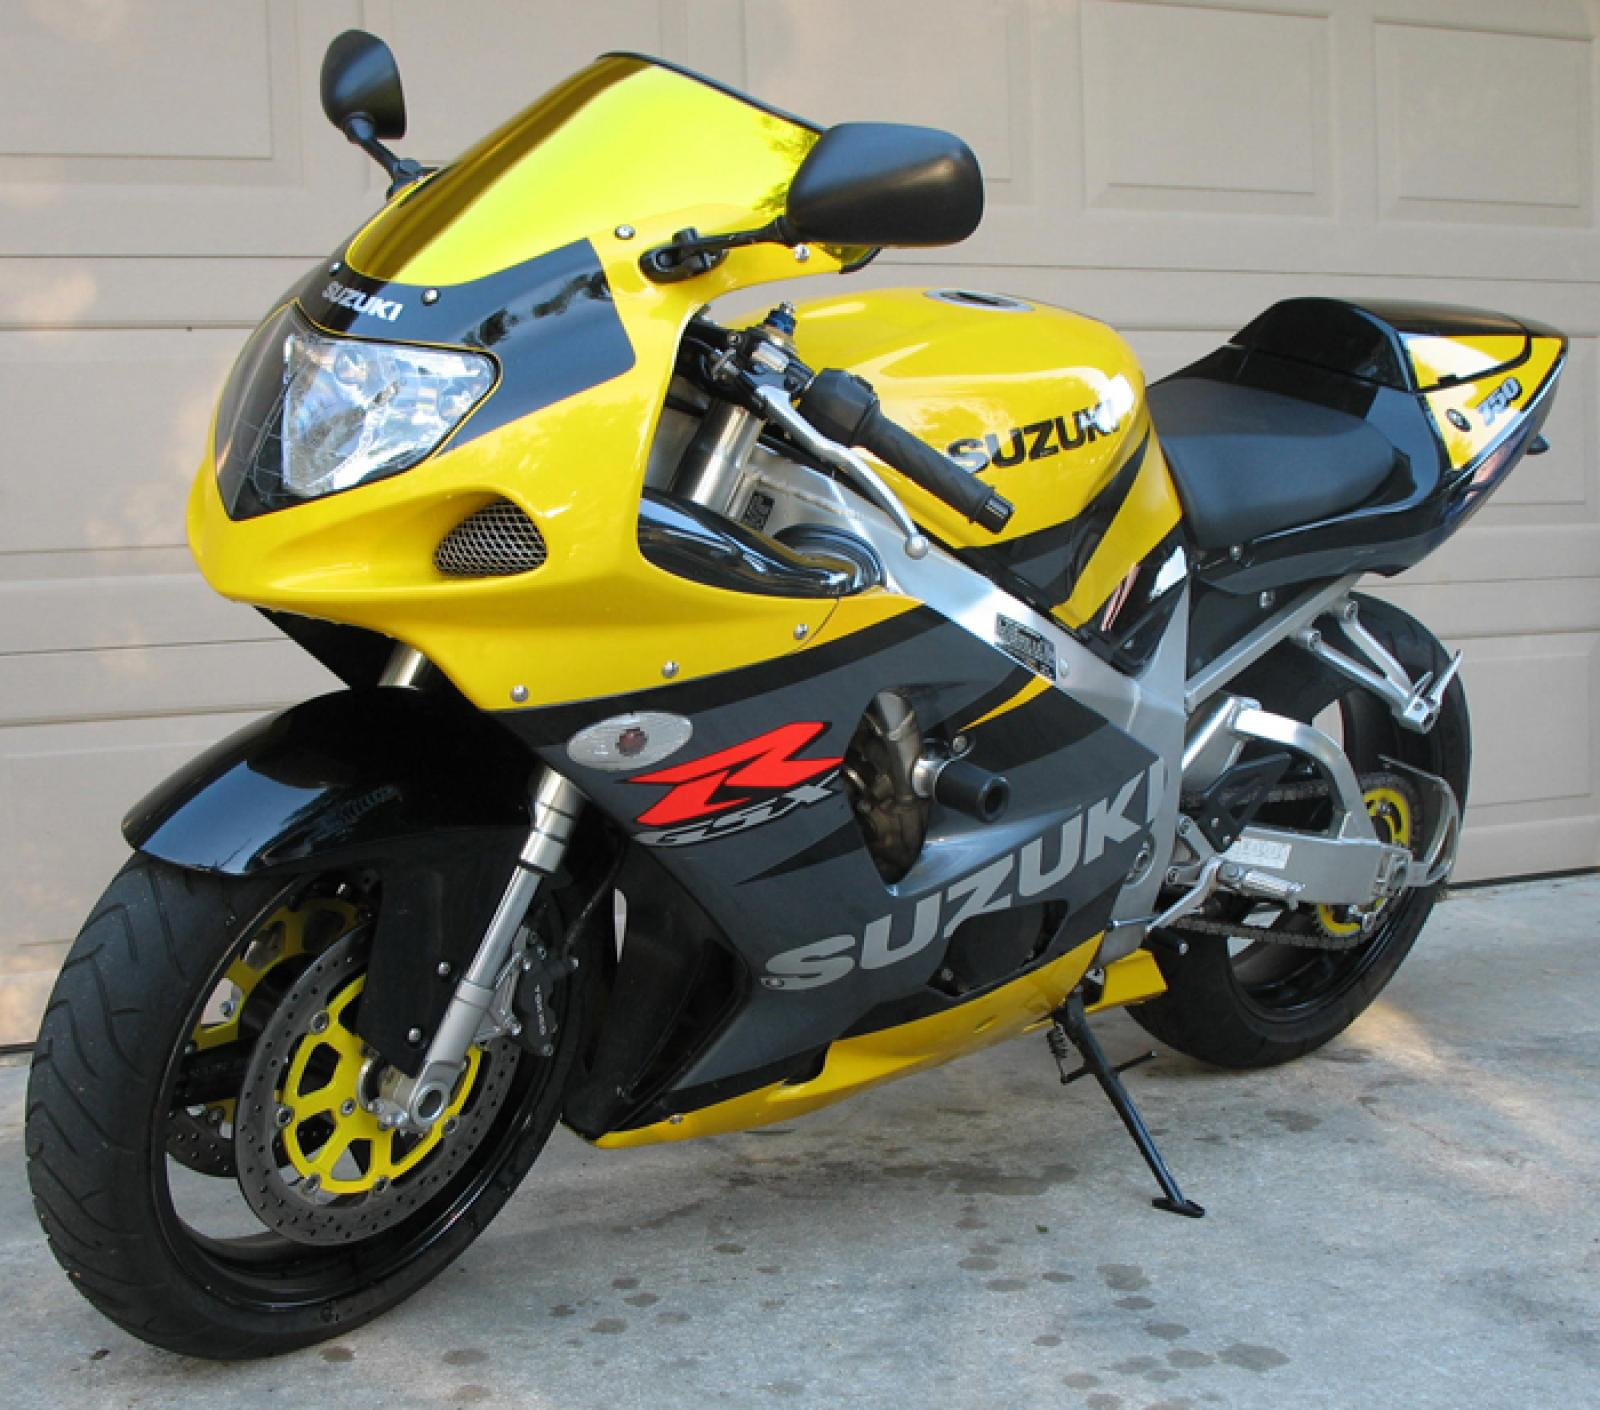 2003 suzuki gsx r 750 moto zombdrive com. Black Bedroom Furniture Sets. Home Design Ideas